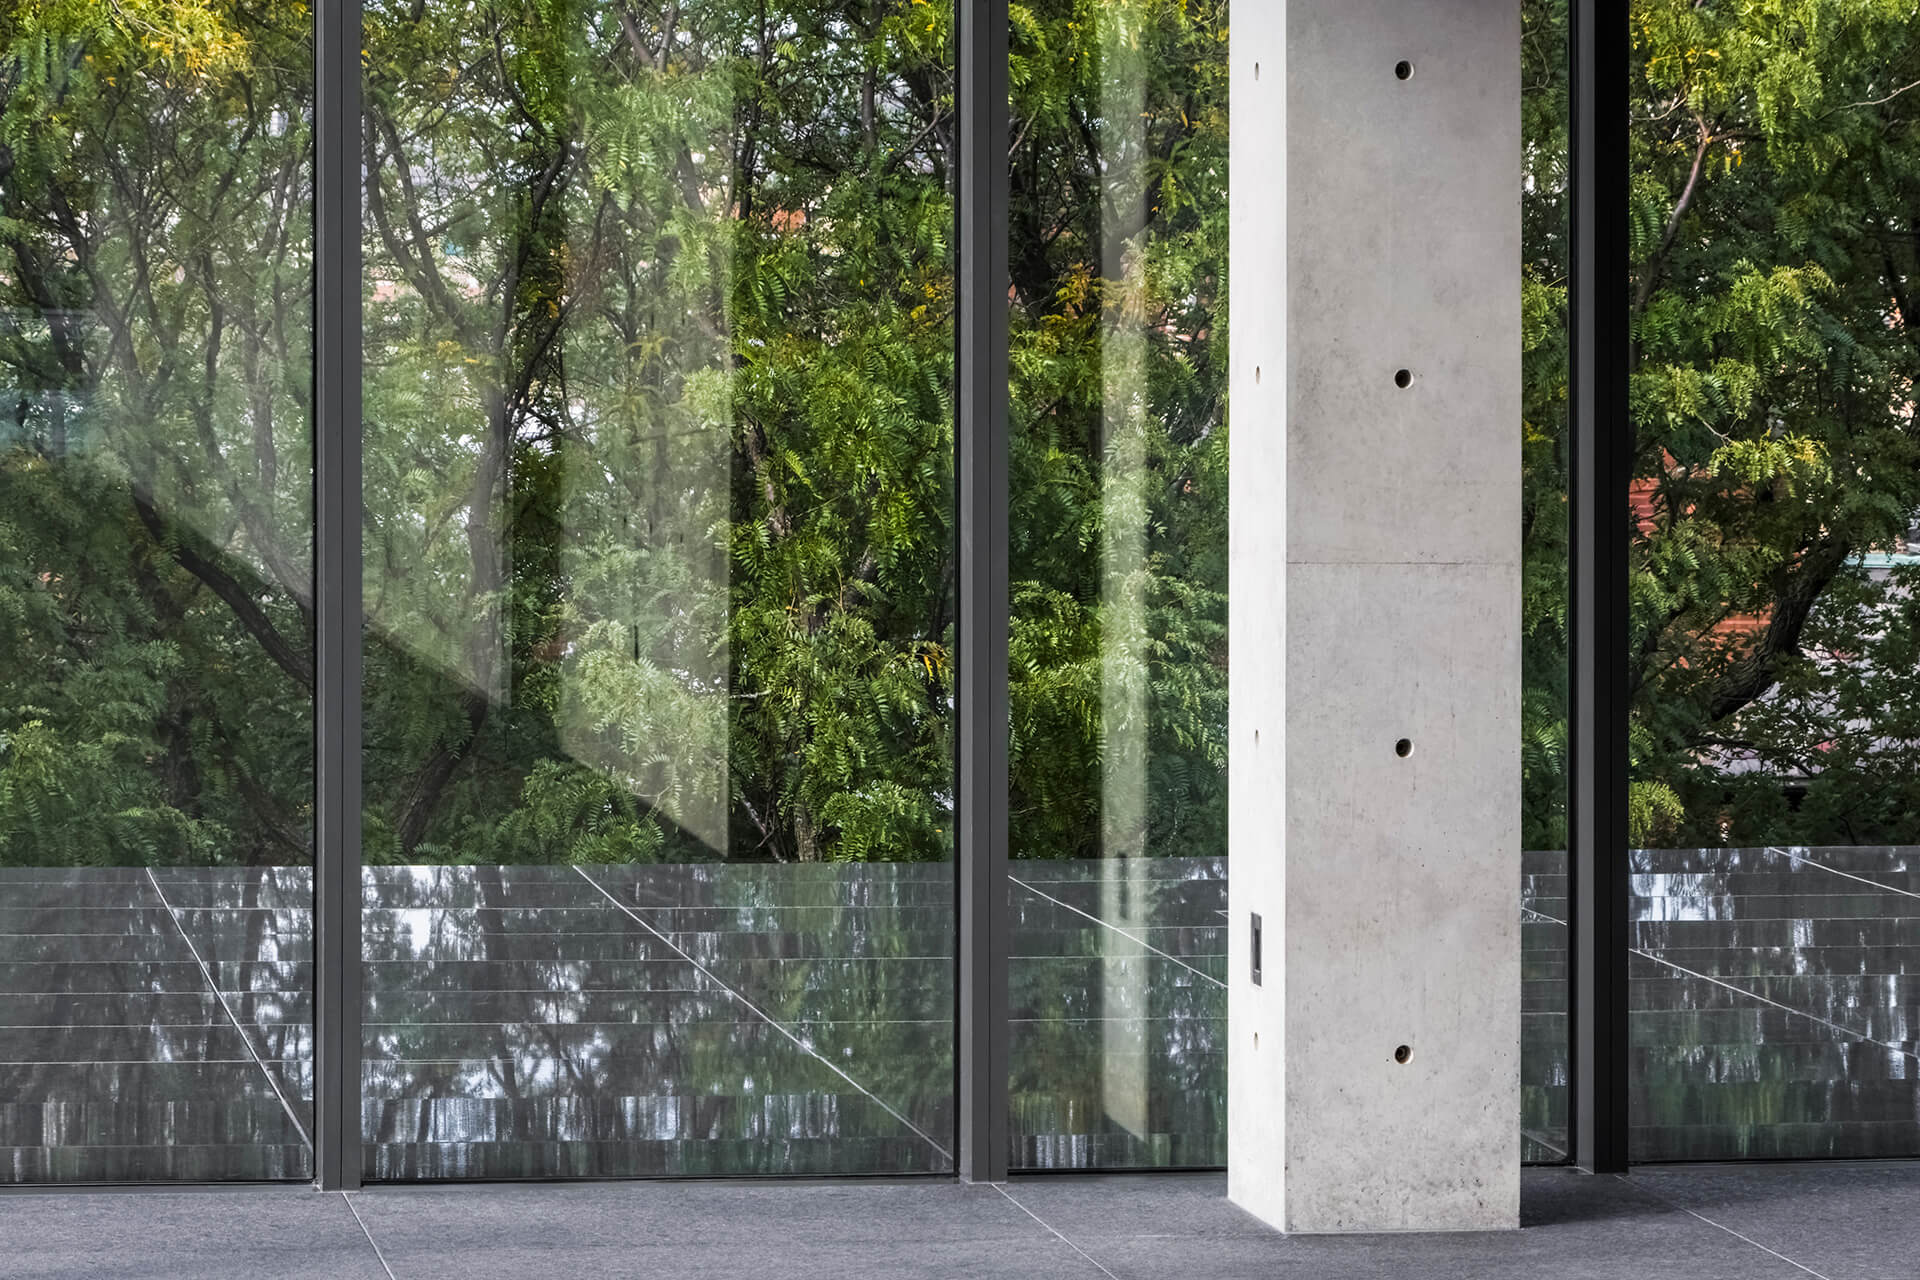 The space has been built as a composite structure of steel frame reinforced with both structural and non-bearing poured-in-place smooth-finish architectural concrete | Wrightwood 659 | Tadao Ando | STIRworld